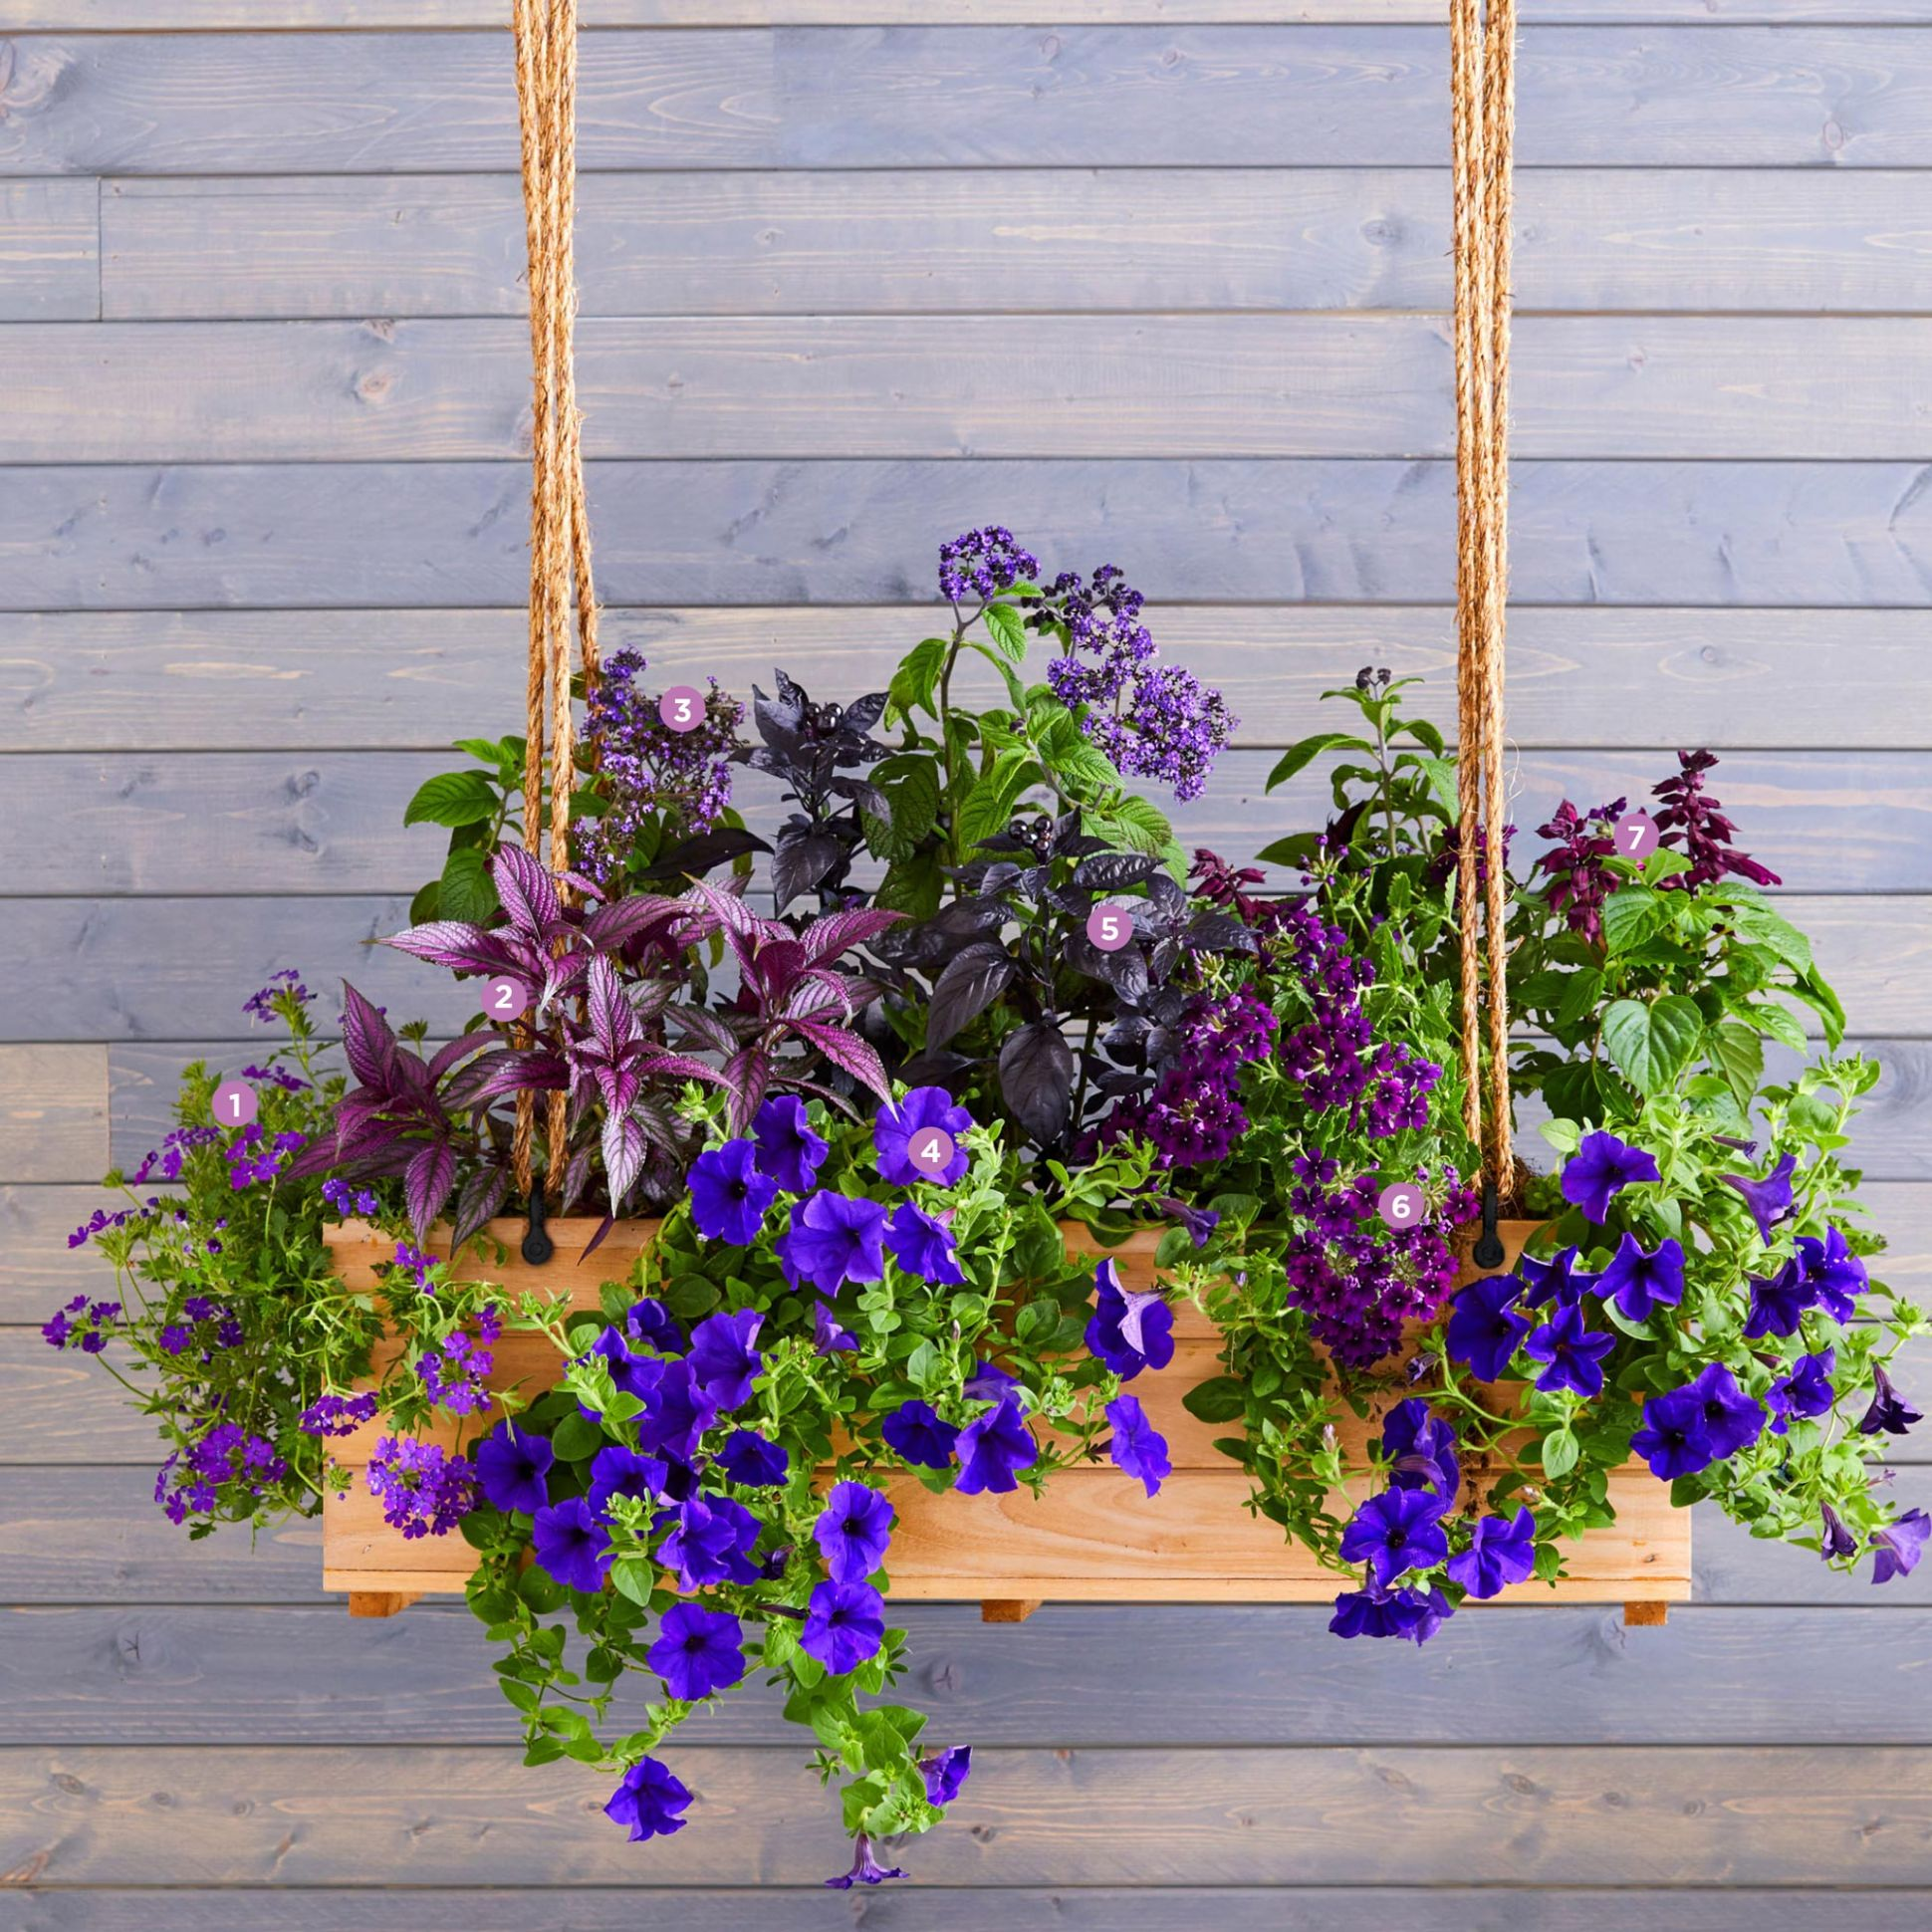 10 Bright and Beautiful Window Box Planters | Midwest Living - window box ideas